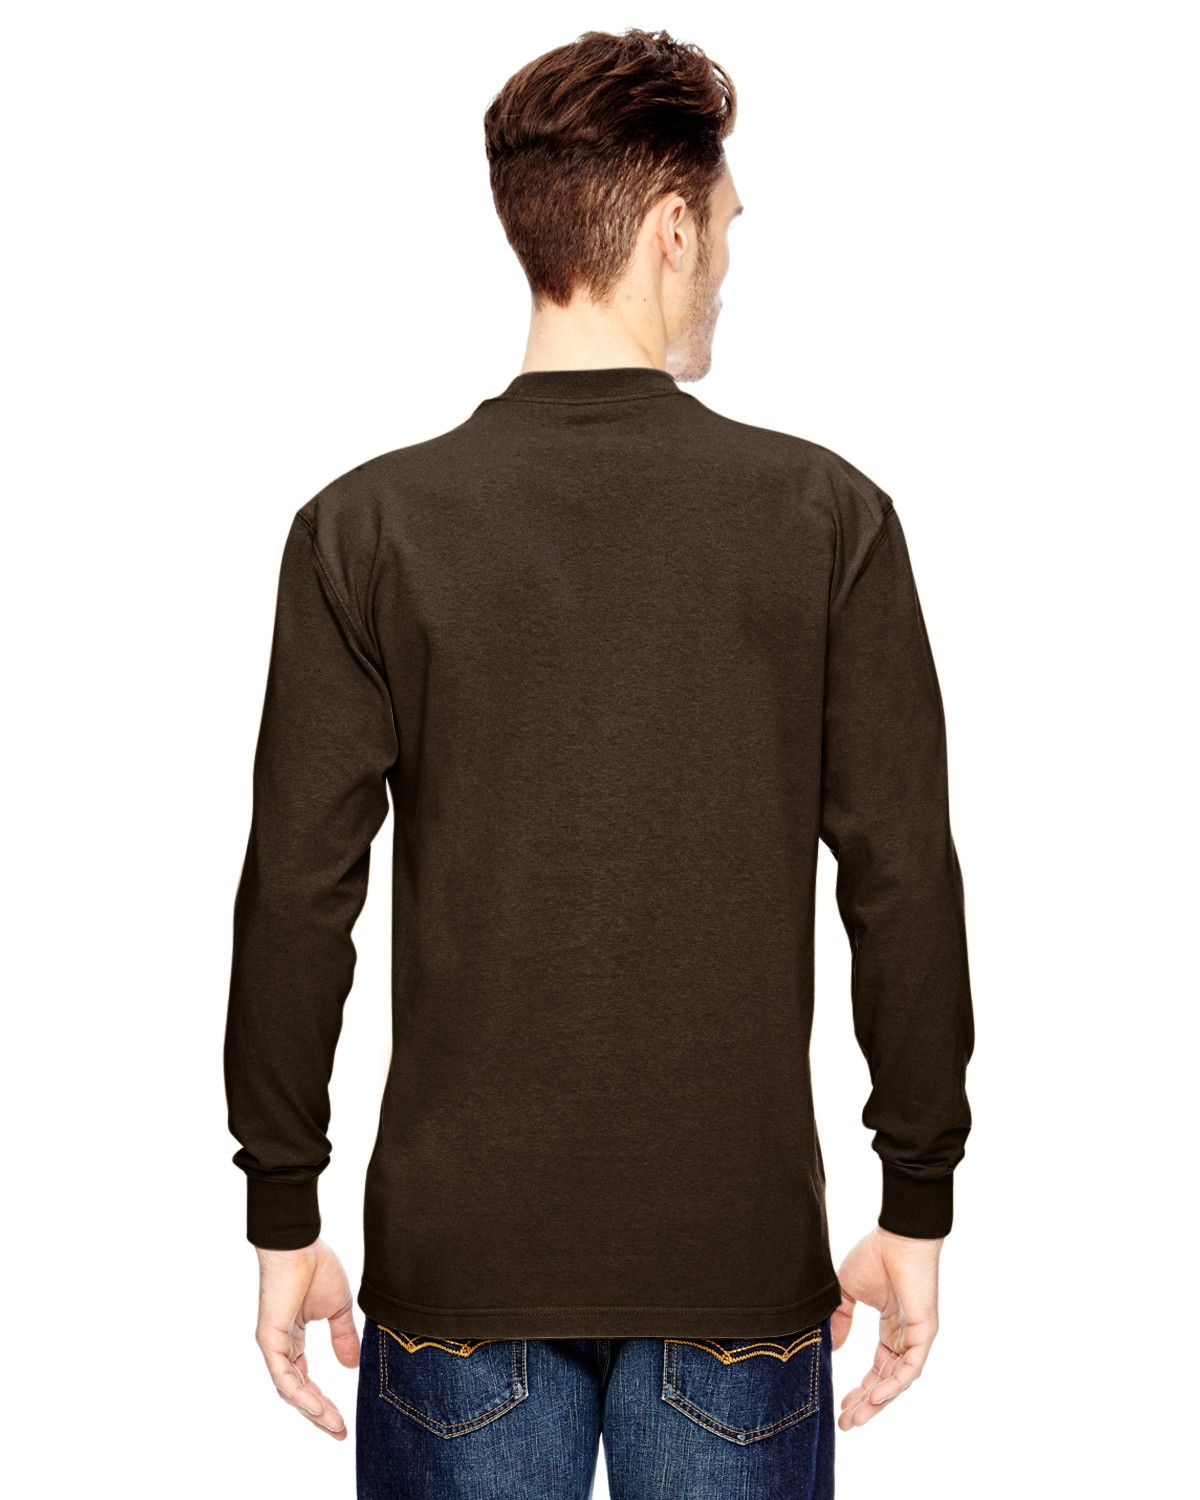 WL450 Dickies CHOCOLATE BROWN